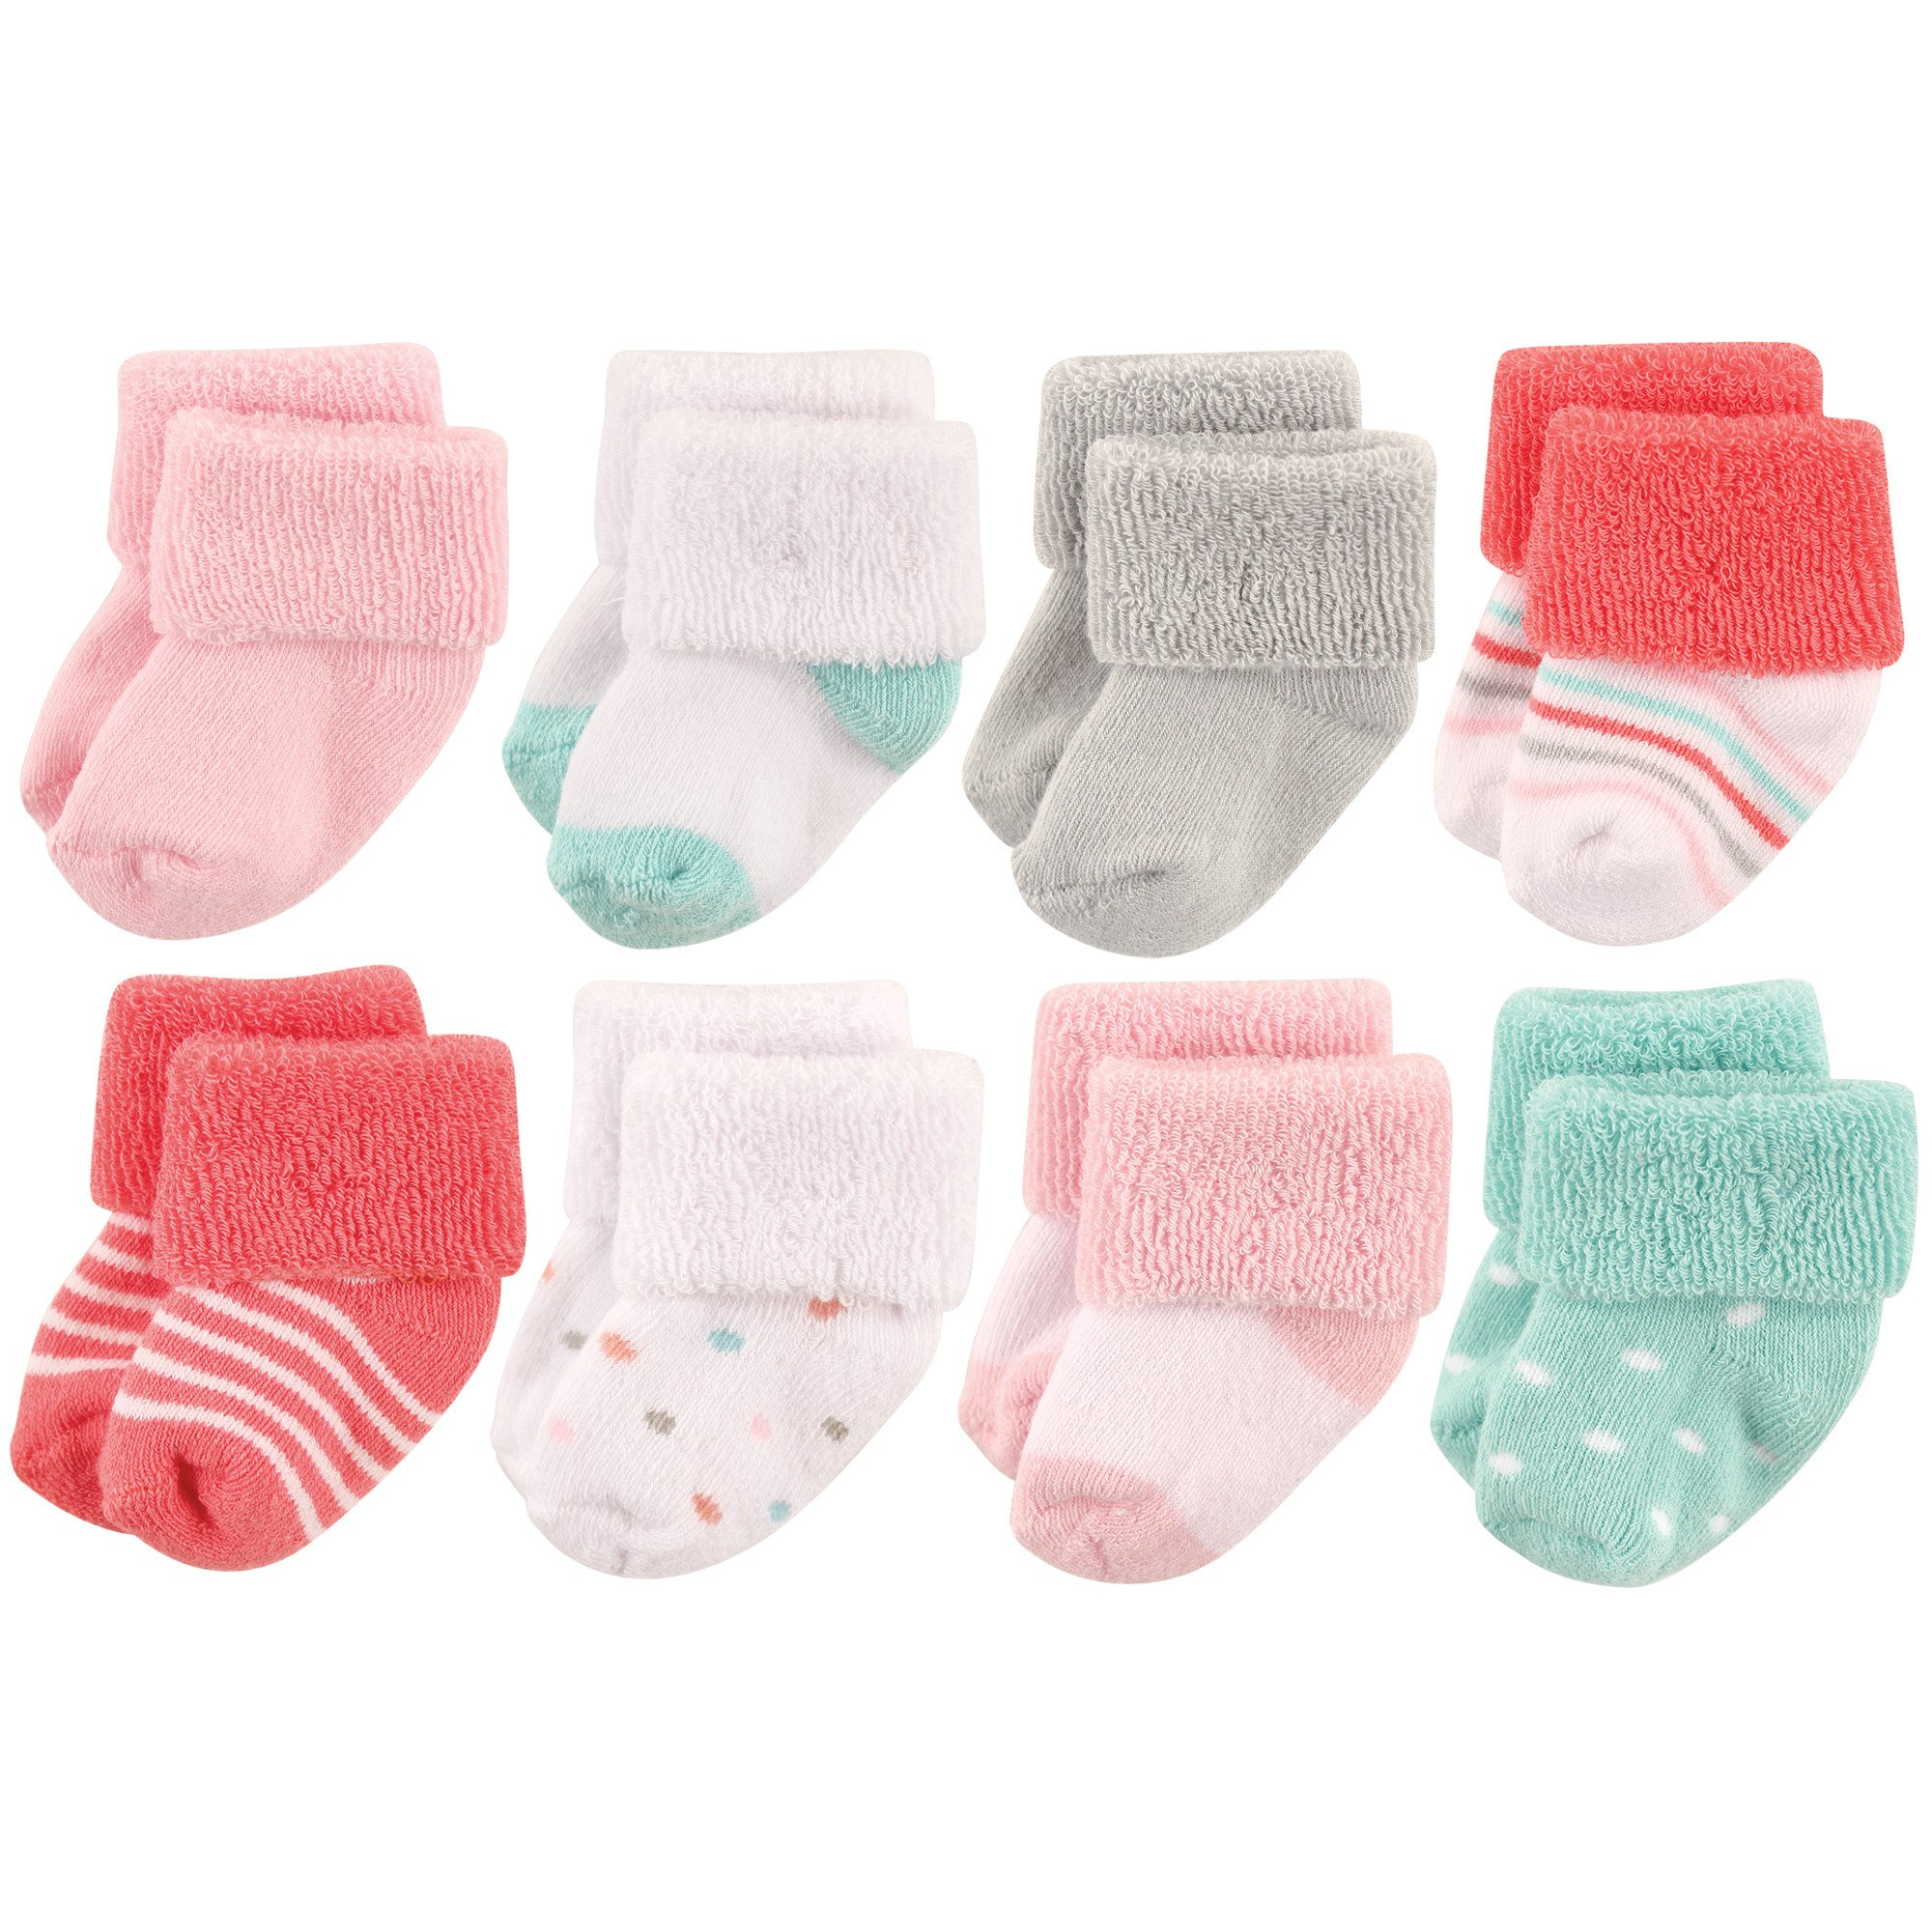 Luvable Friends Unisex Baby Socks, Coral Dots